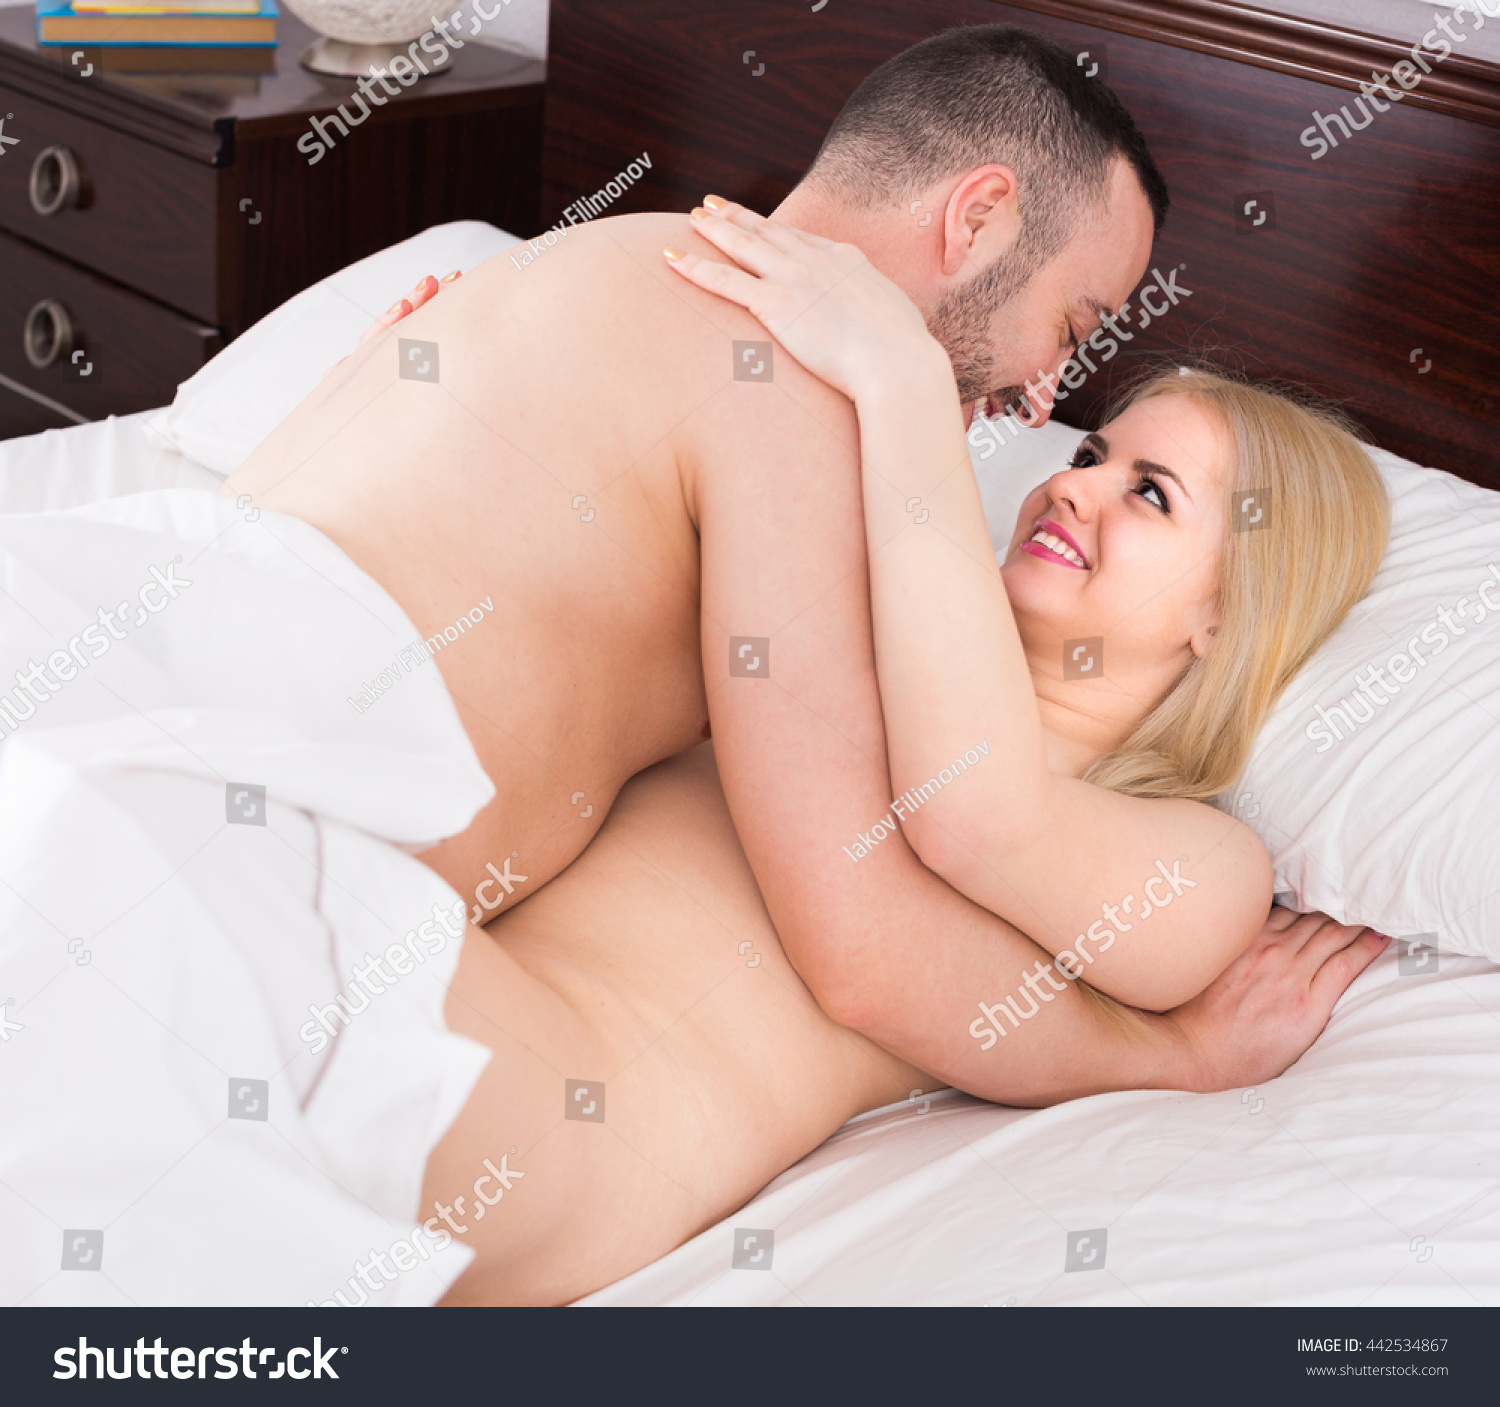 Koppels bed sex